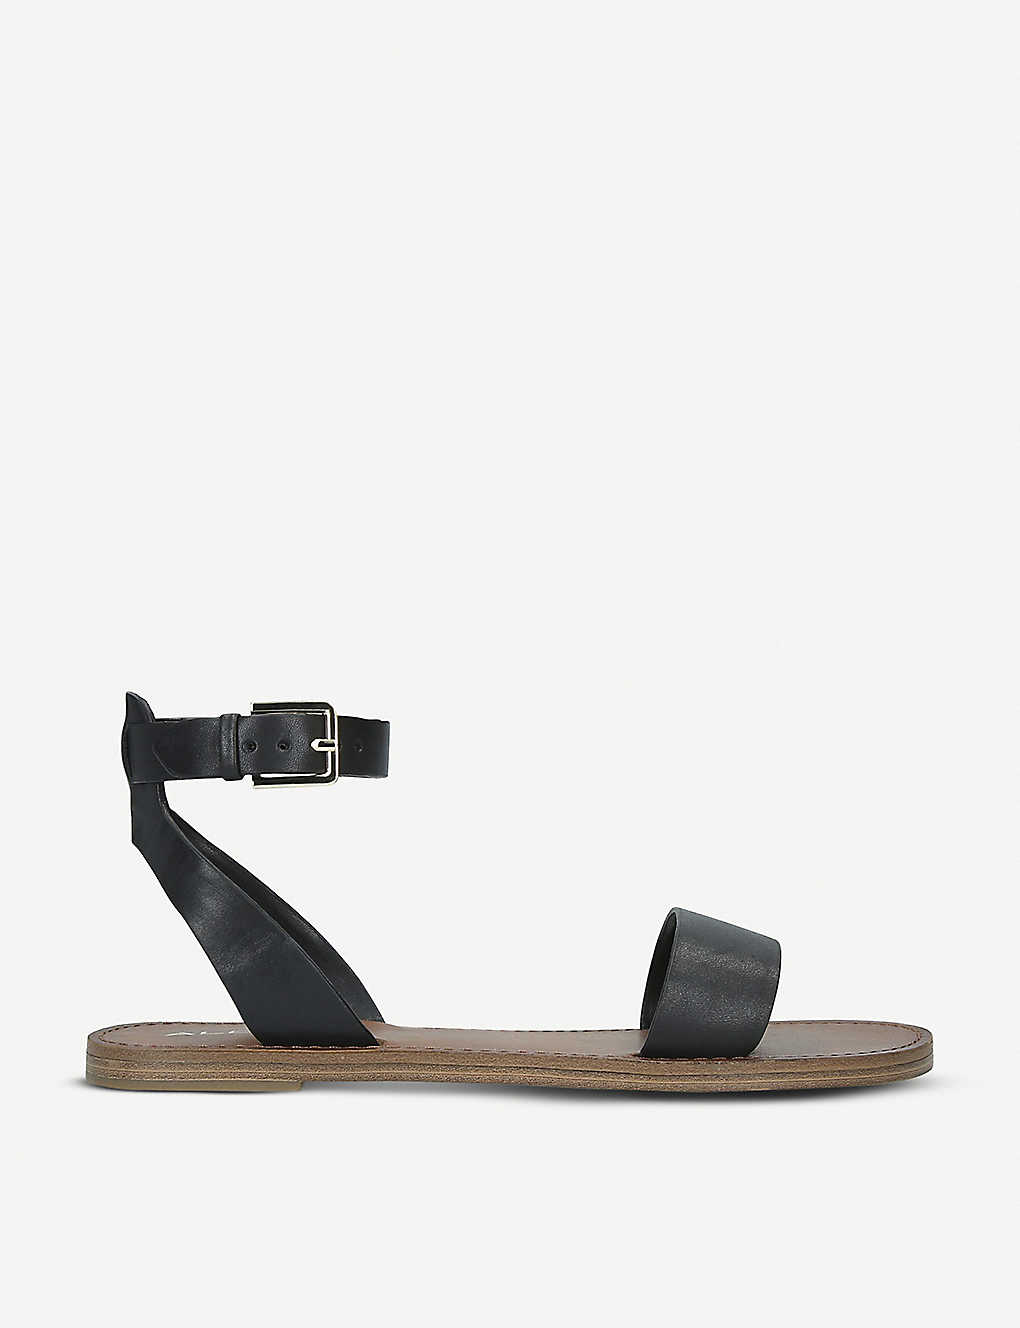 6335a082a32b2 ALDO - Campodoro leather sandals | Selfridges.com